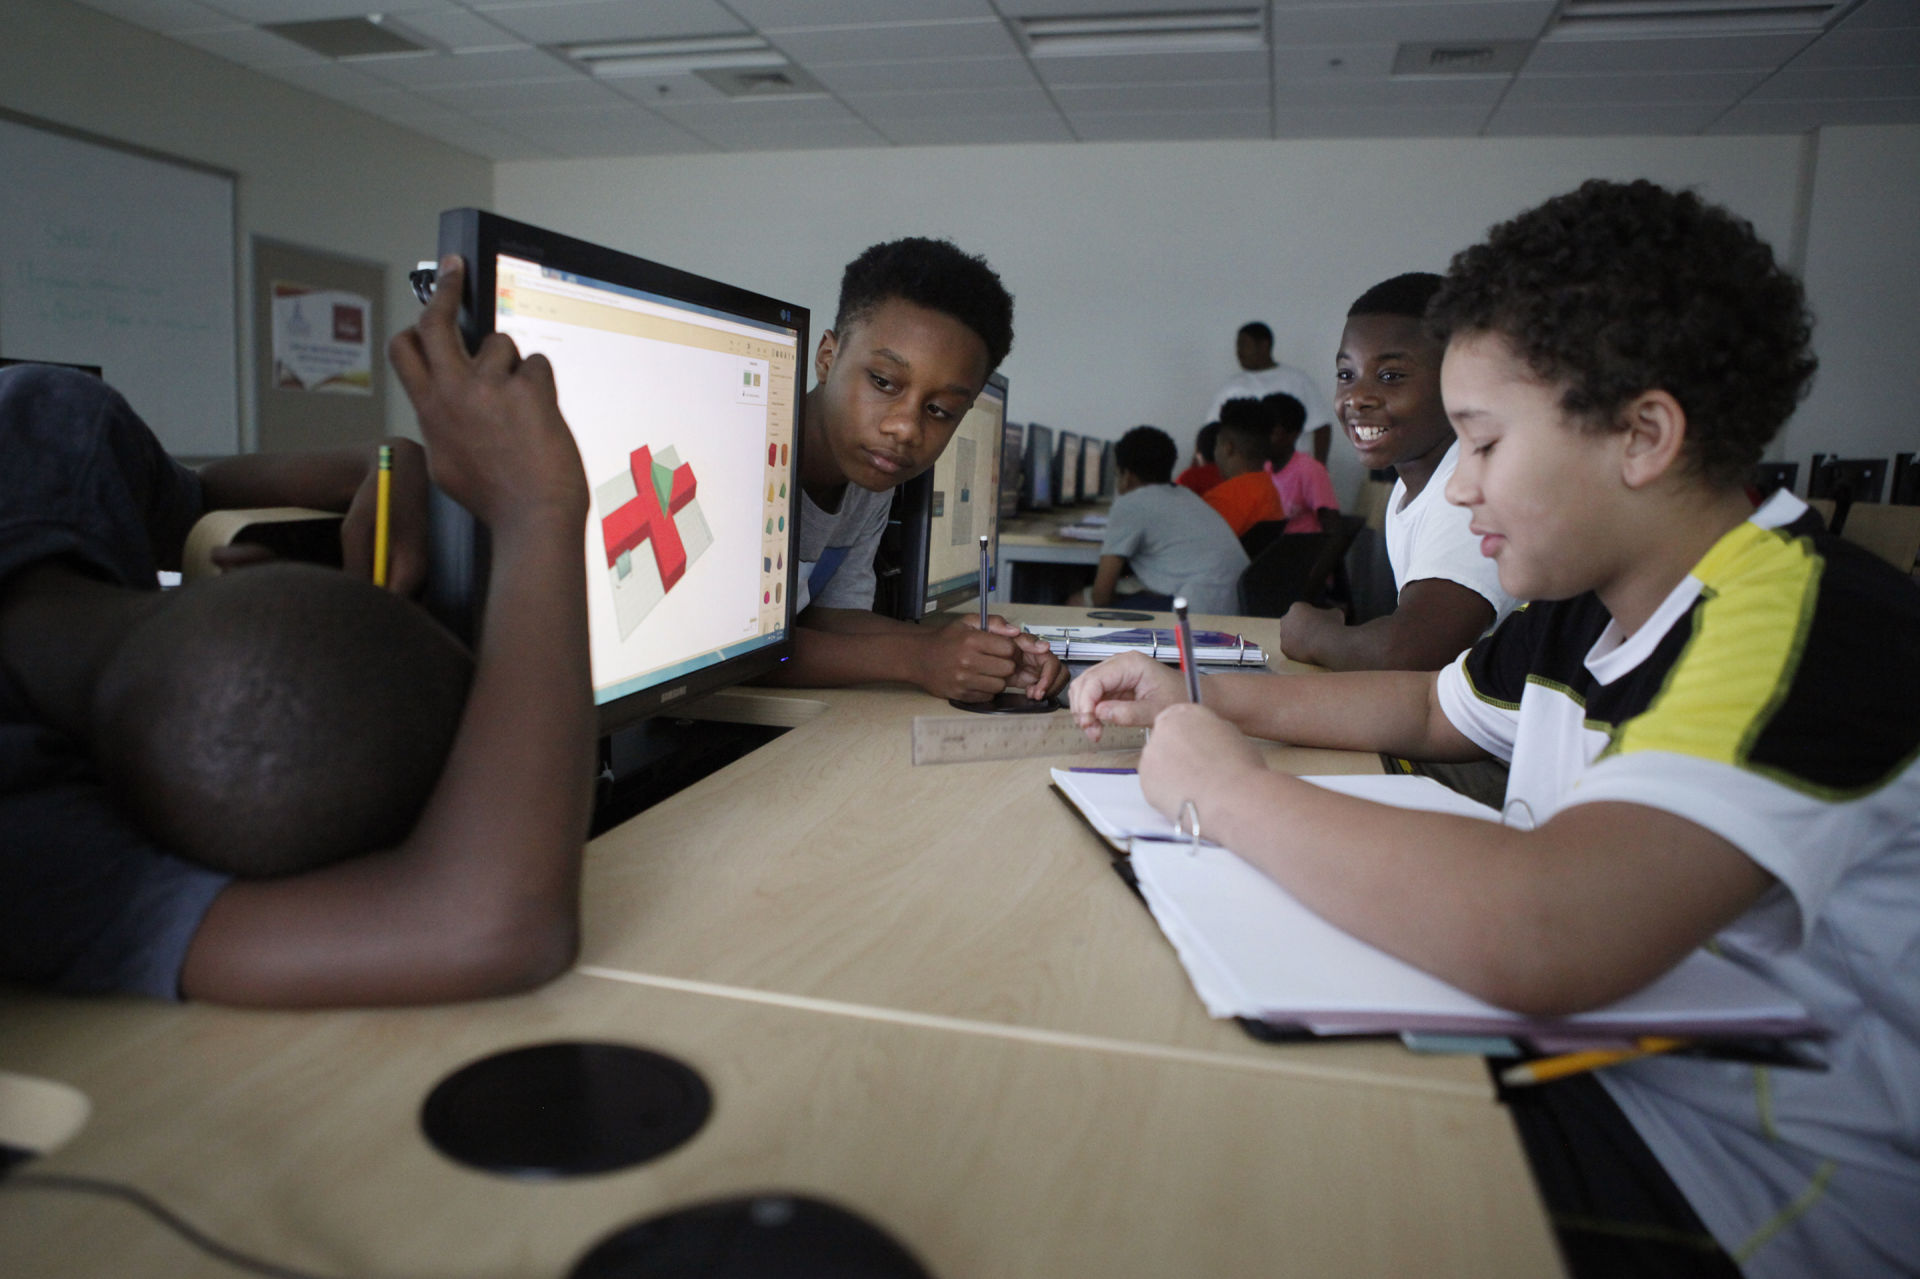 Coding Camp for Minority Boys Where Mentors Make a Big Difference